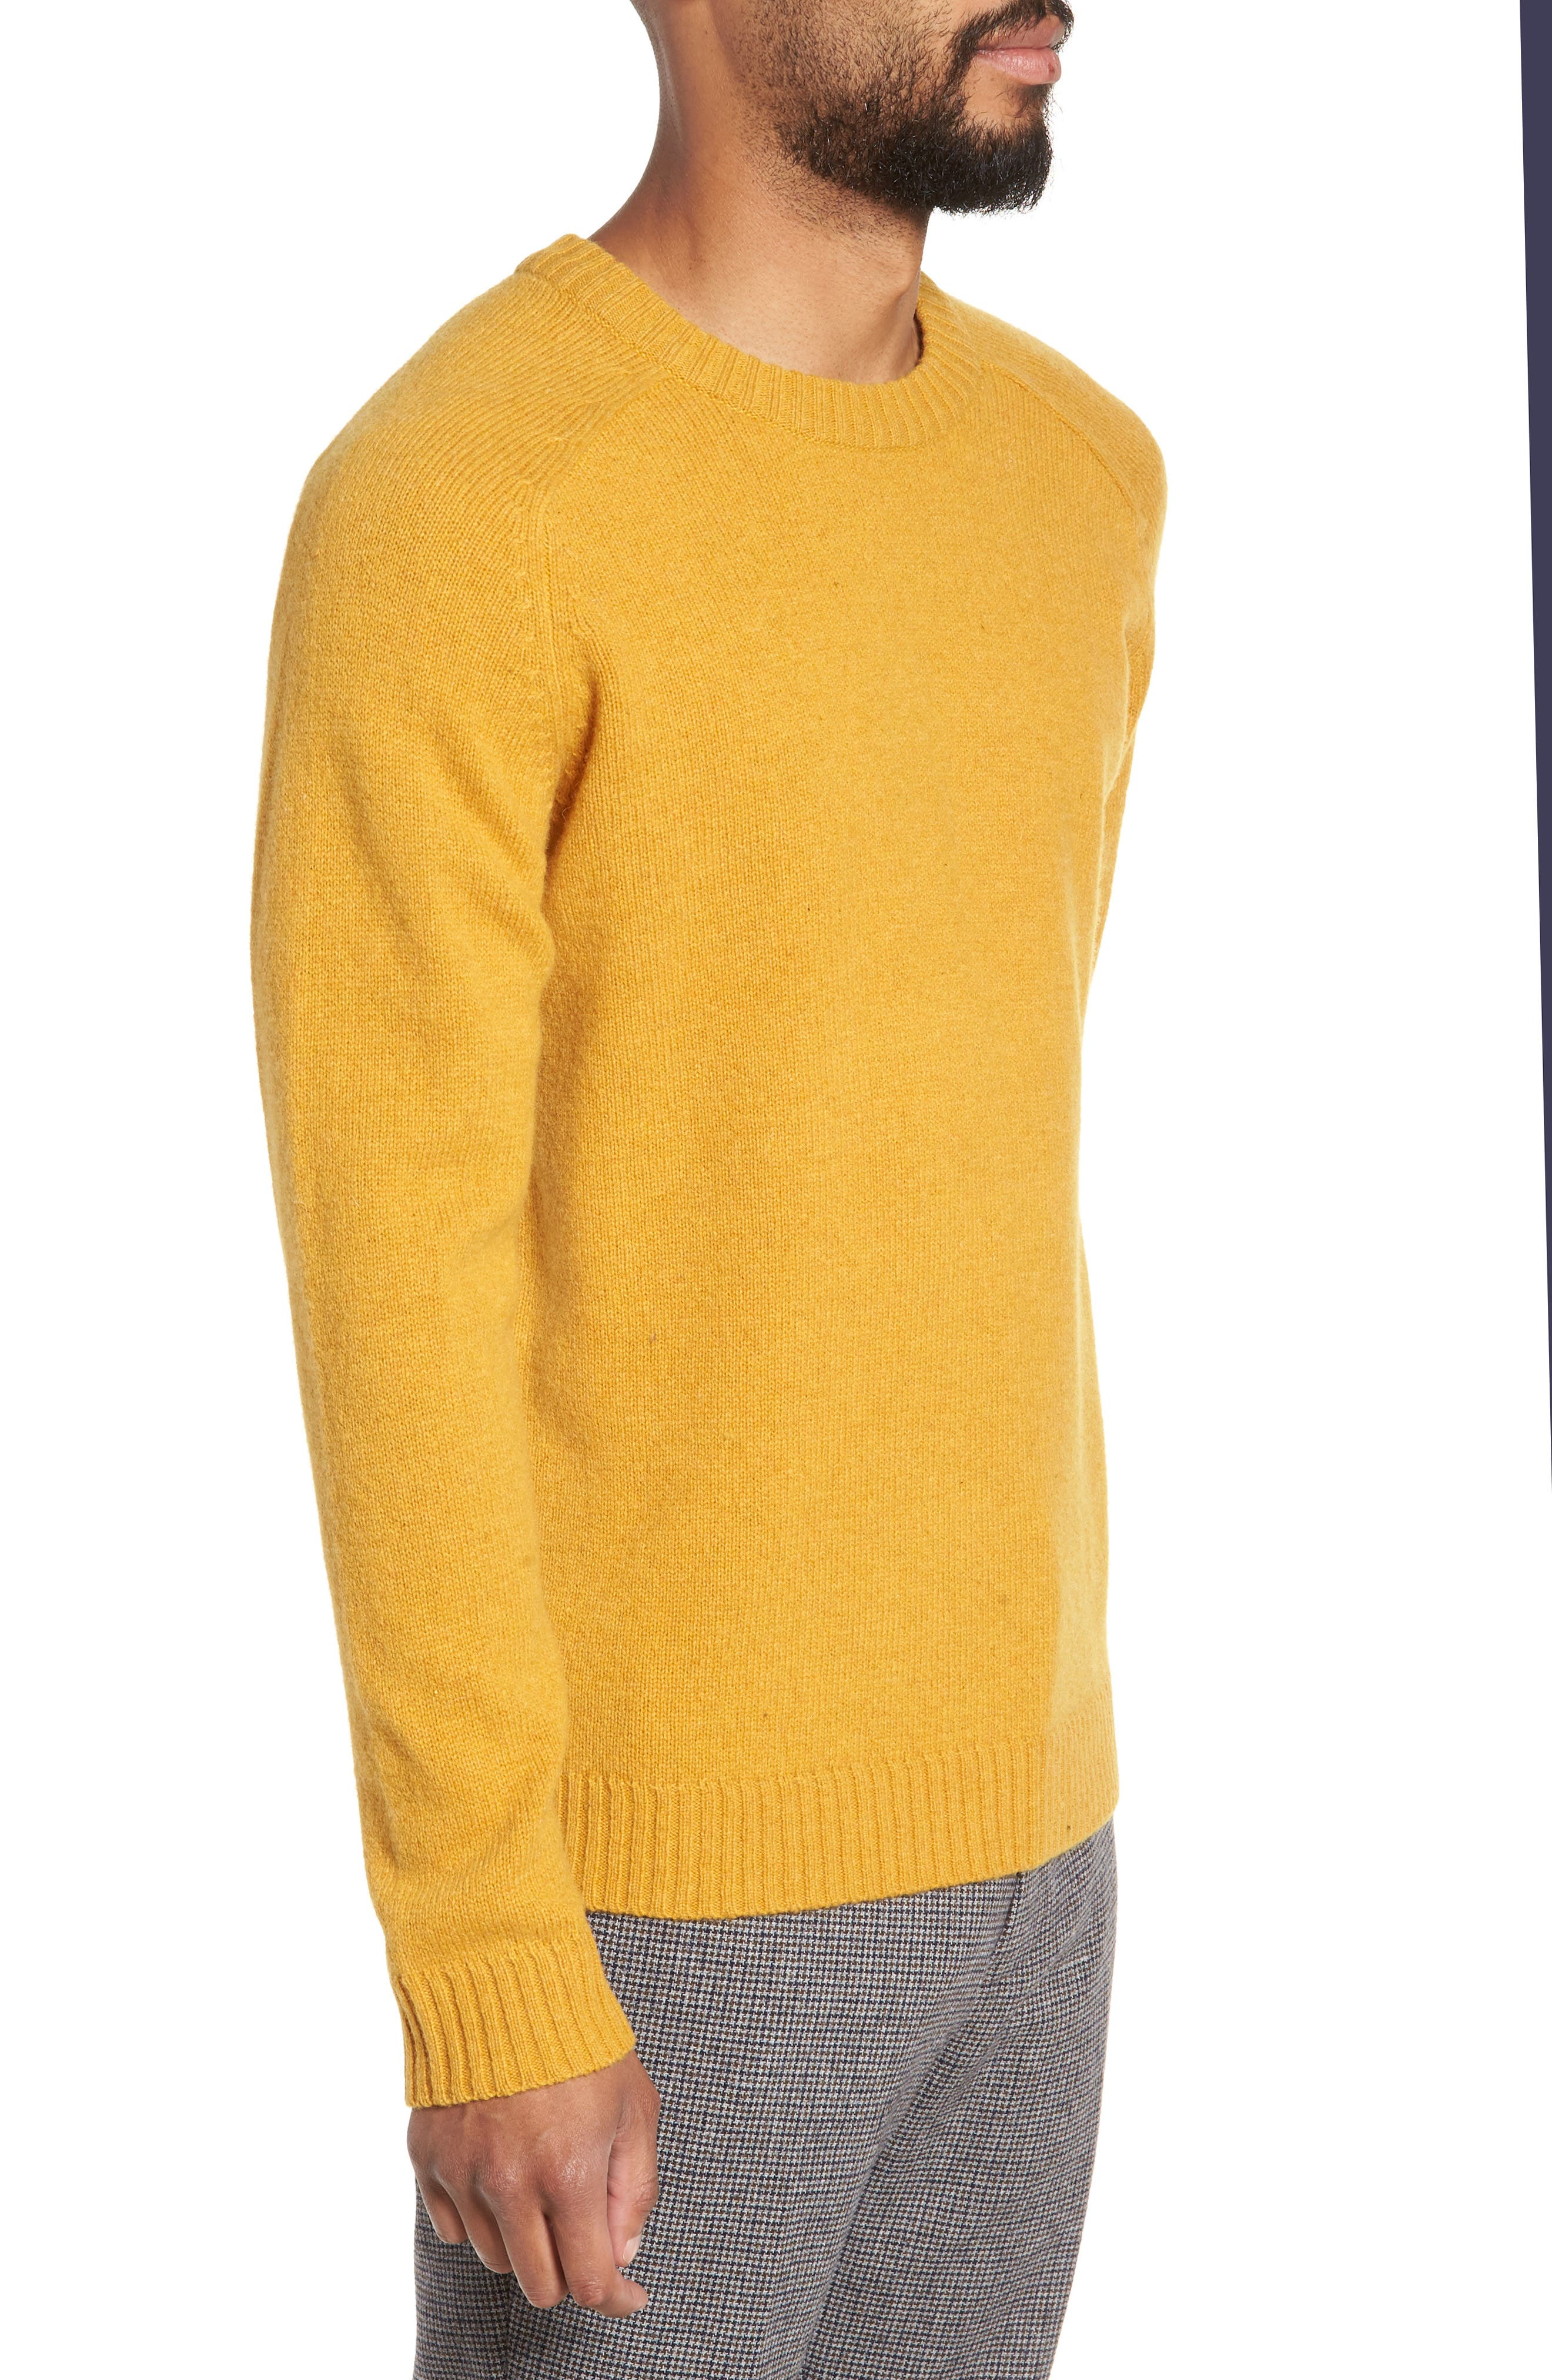 New Coban Regular Fit Wool Sweater,                             Alternate thumbnail 3, color,                             CURRY